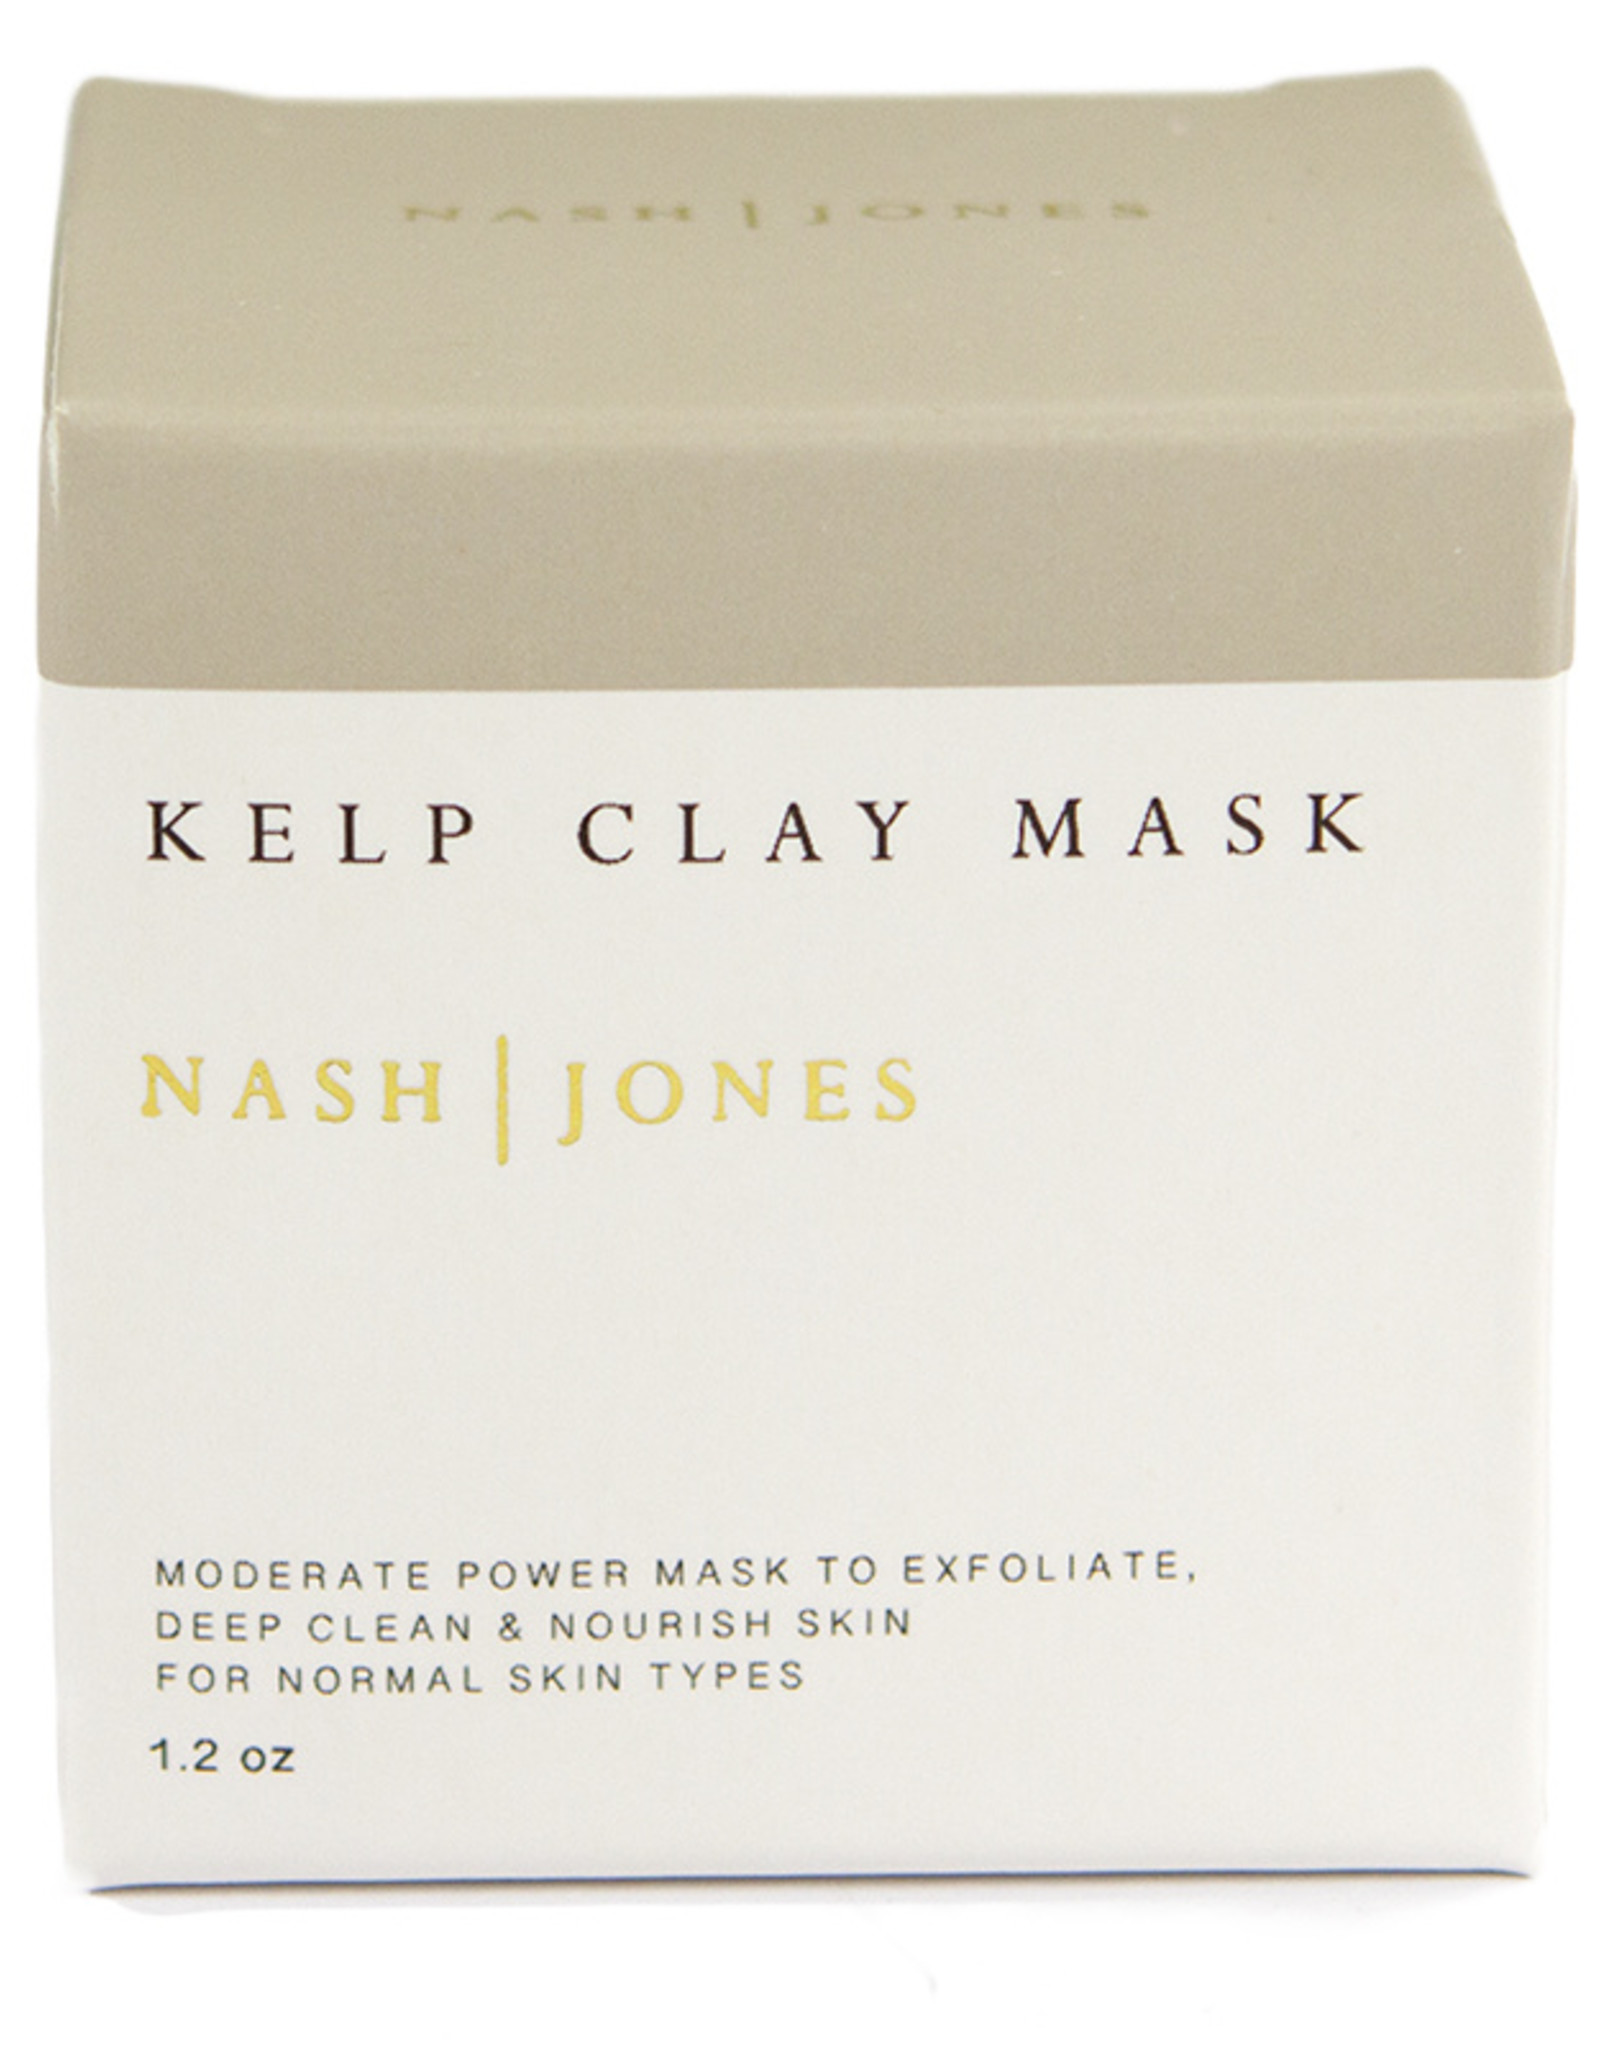 Nash Jones Nash Jones Clay Mask: Kelp Clay